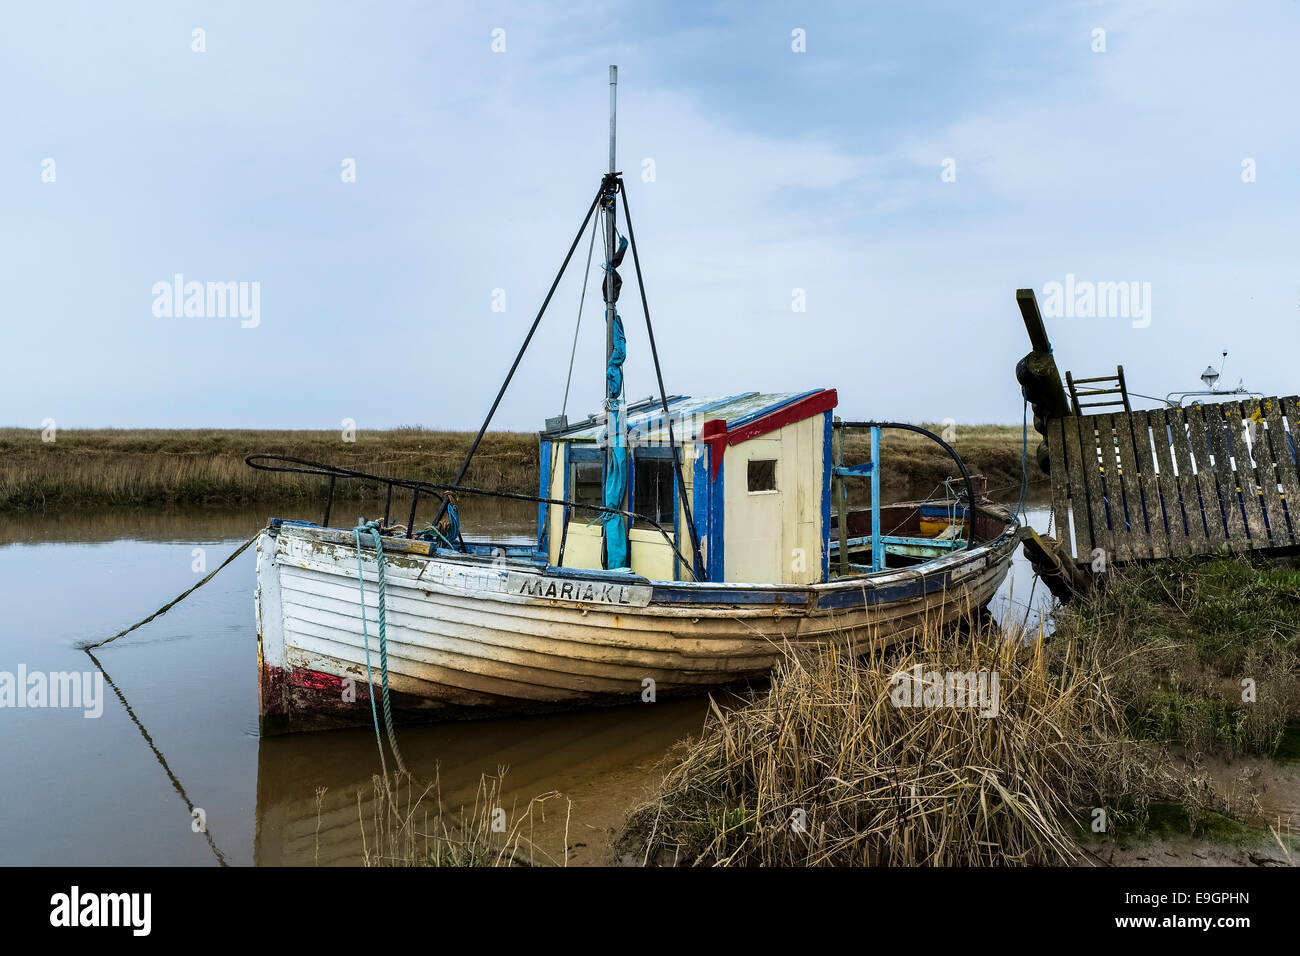 A fishing that has seen better days. - Stock Image